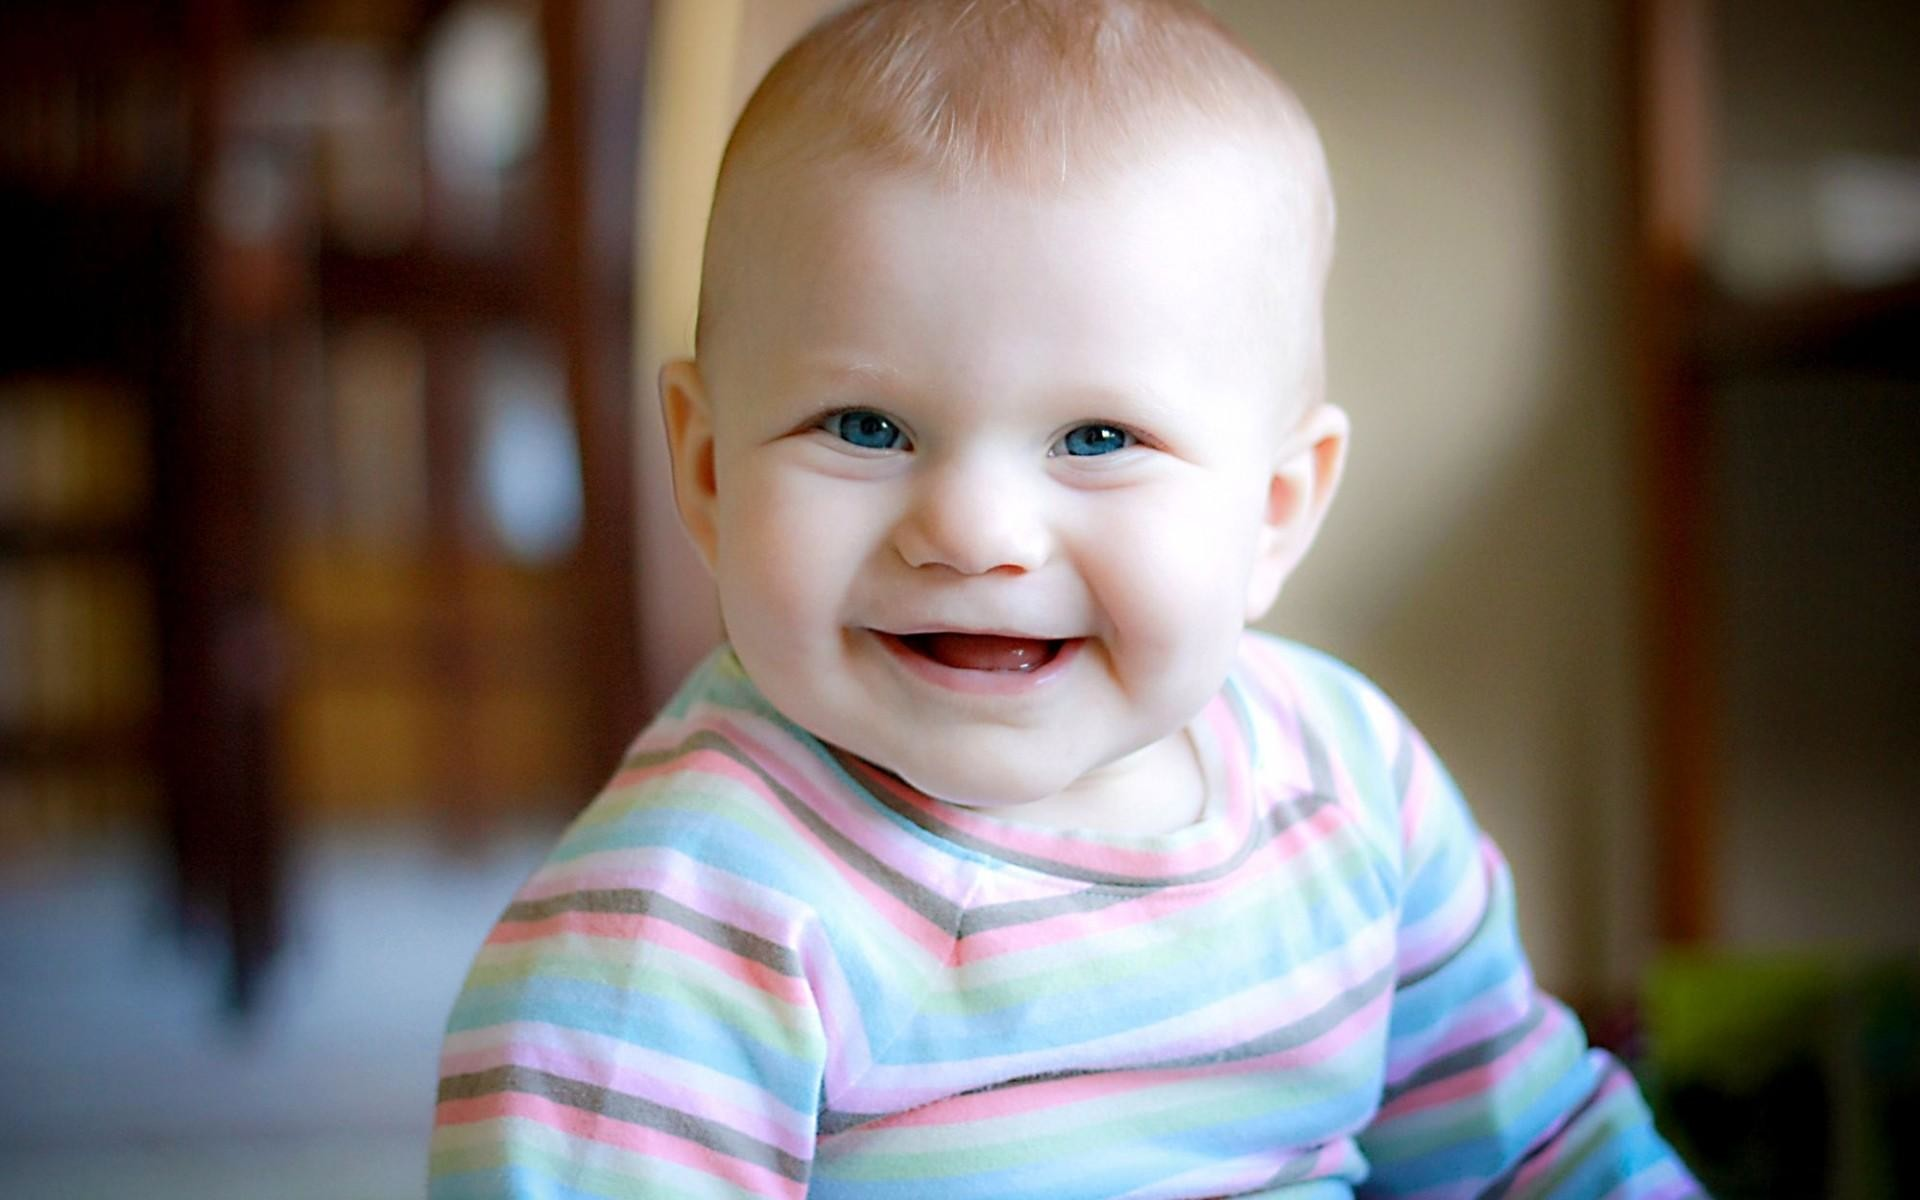 Beautiful Babies Wallpapers 2018 66 Pictures